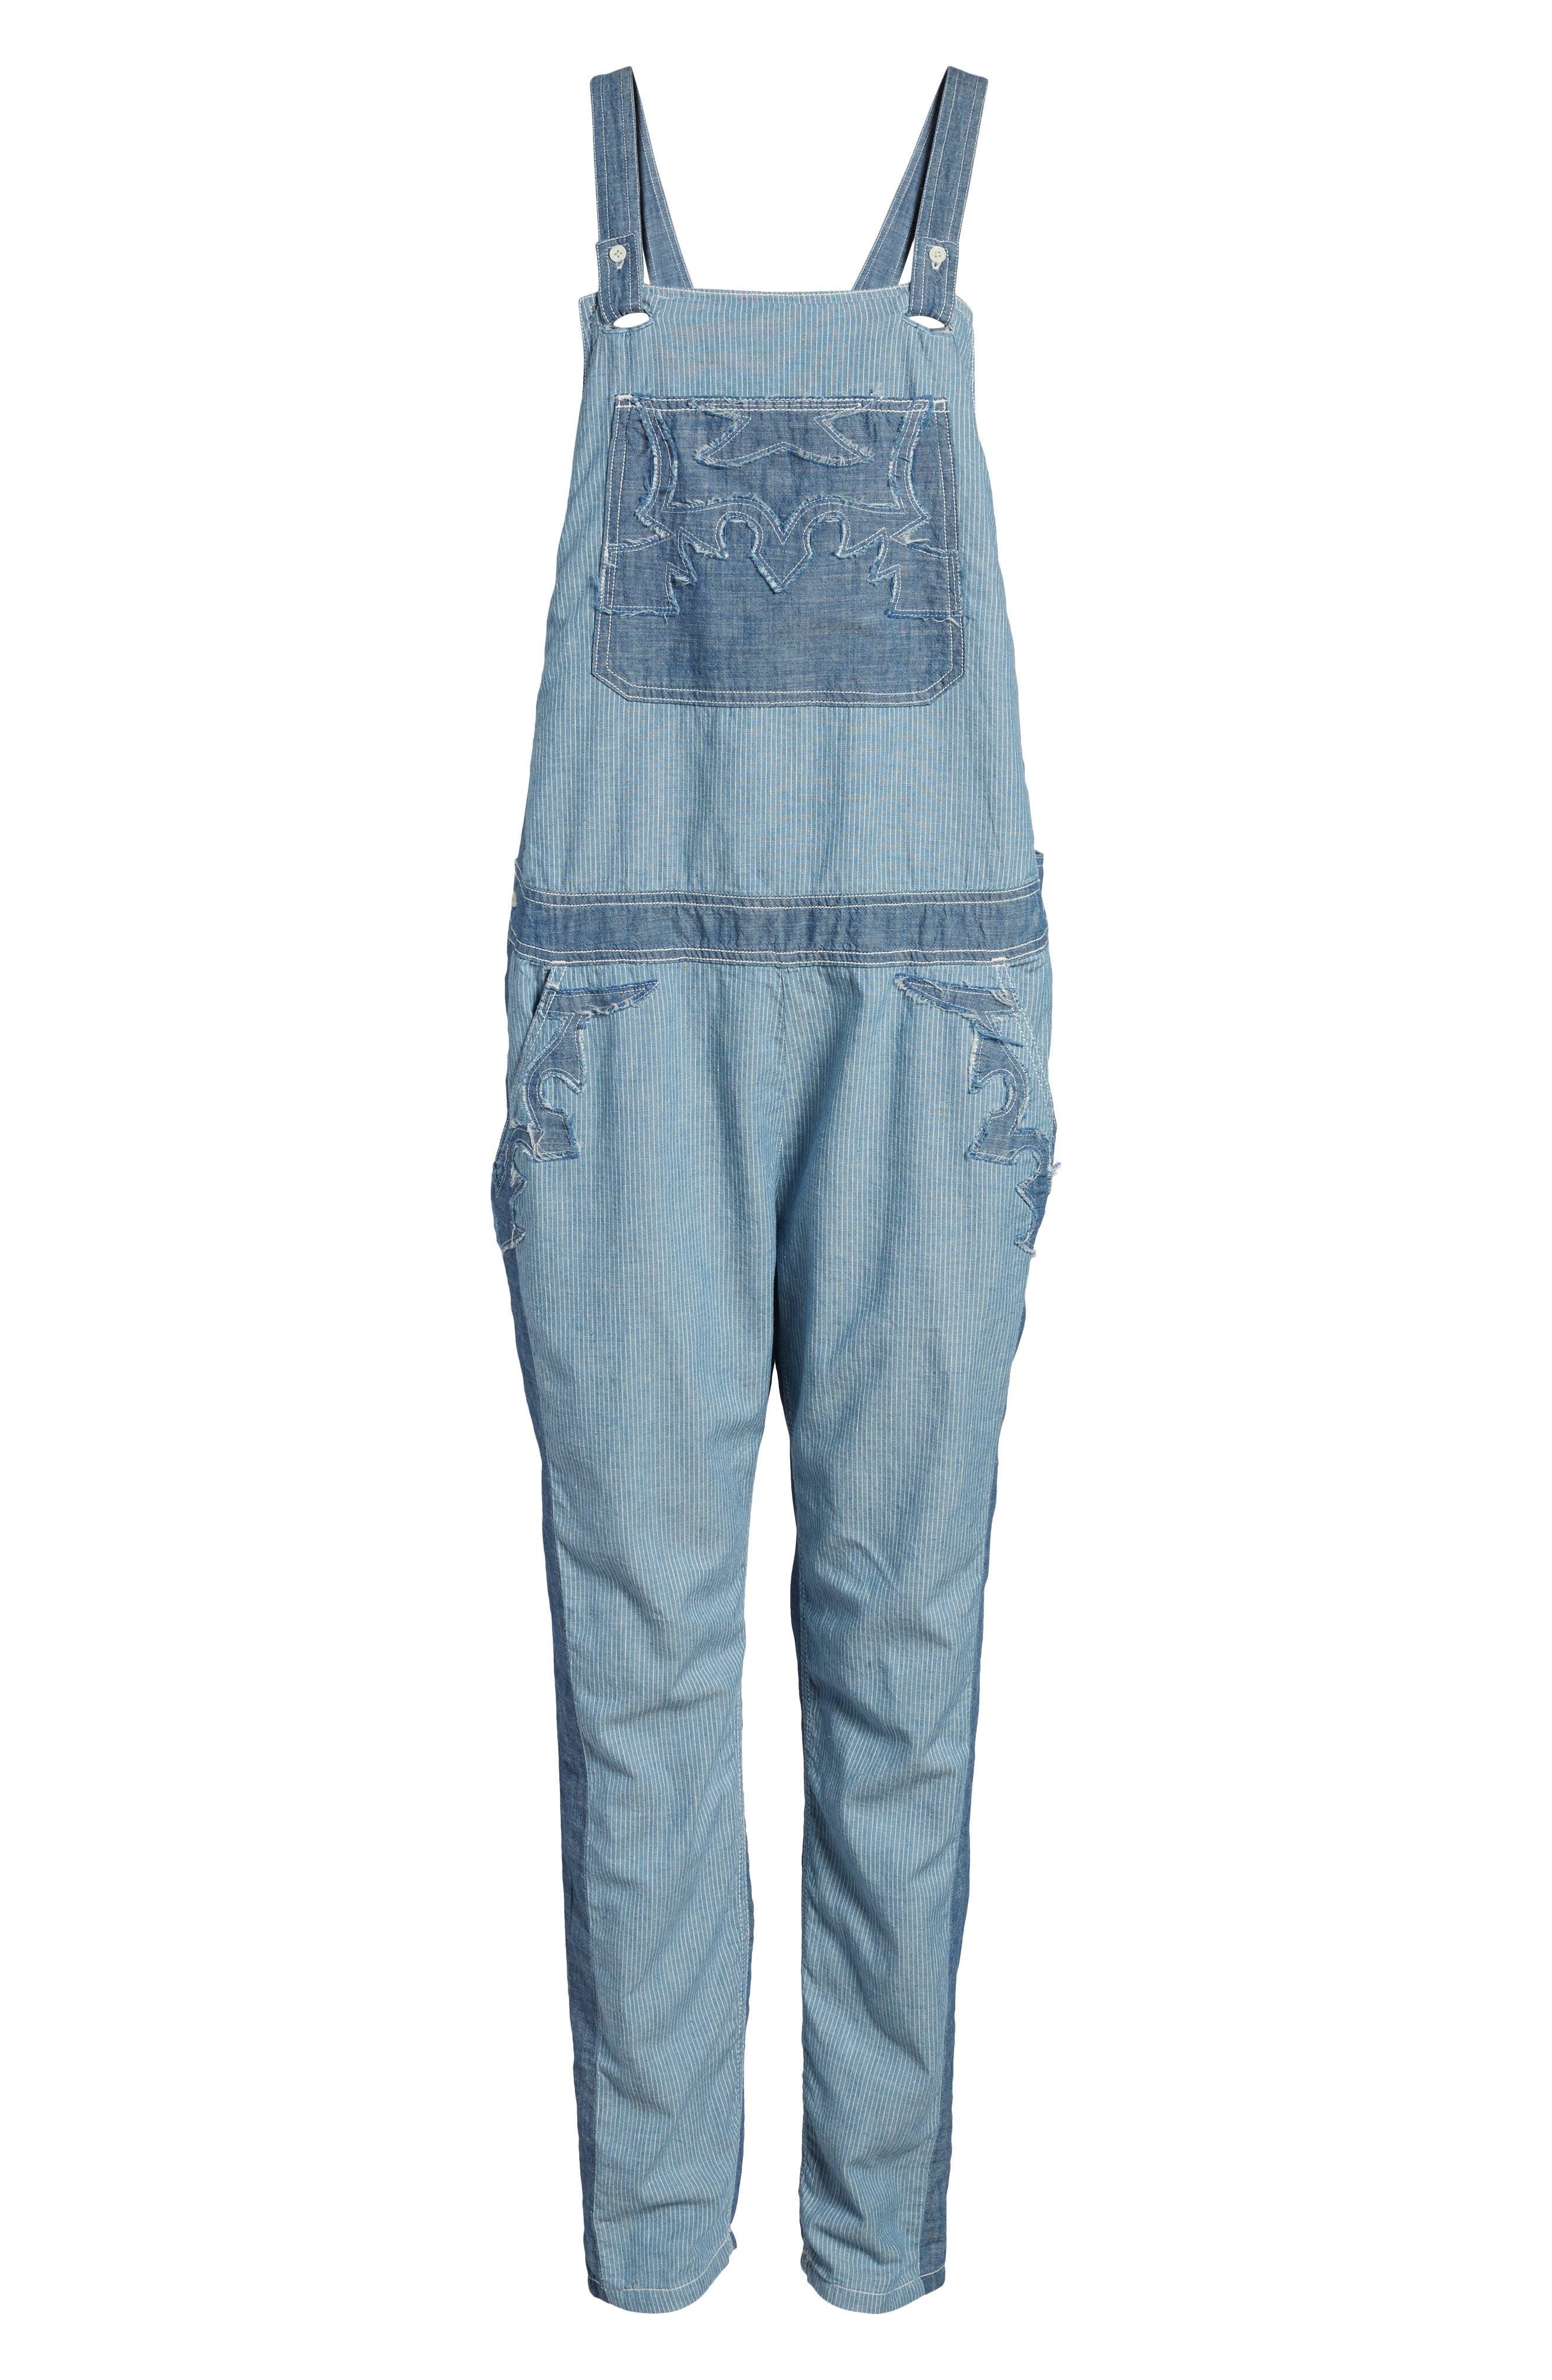 Sidney Patch Overalls,                             Alternate thumbnail 6, color,                             465